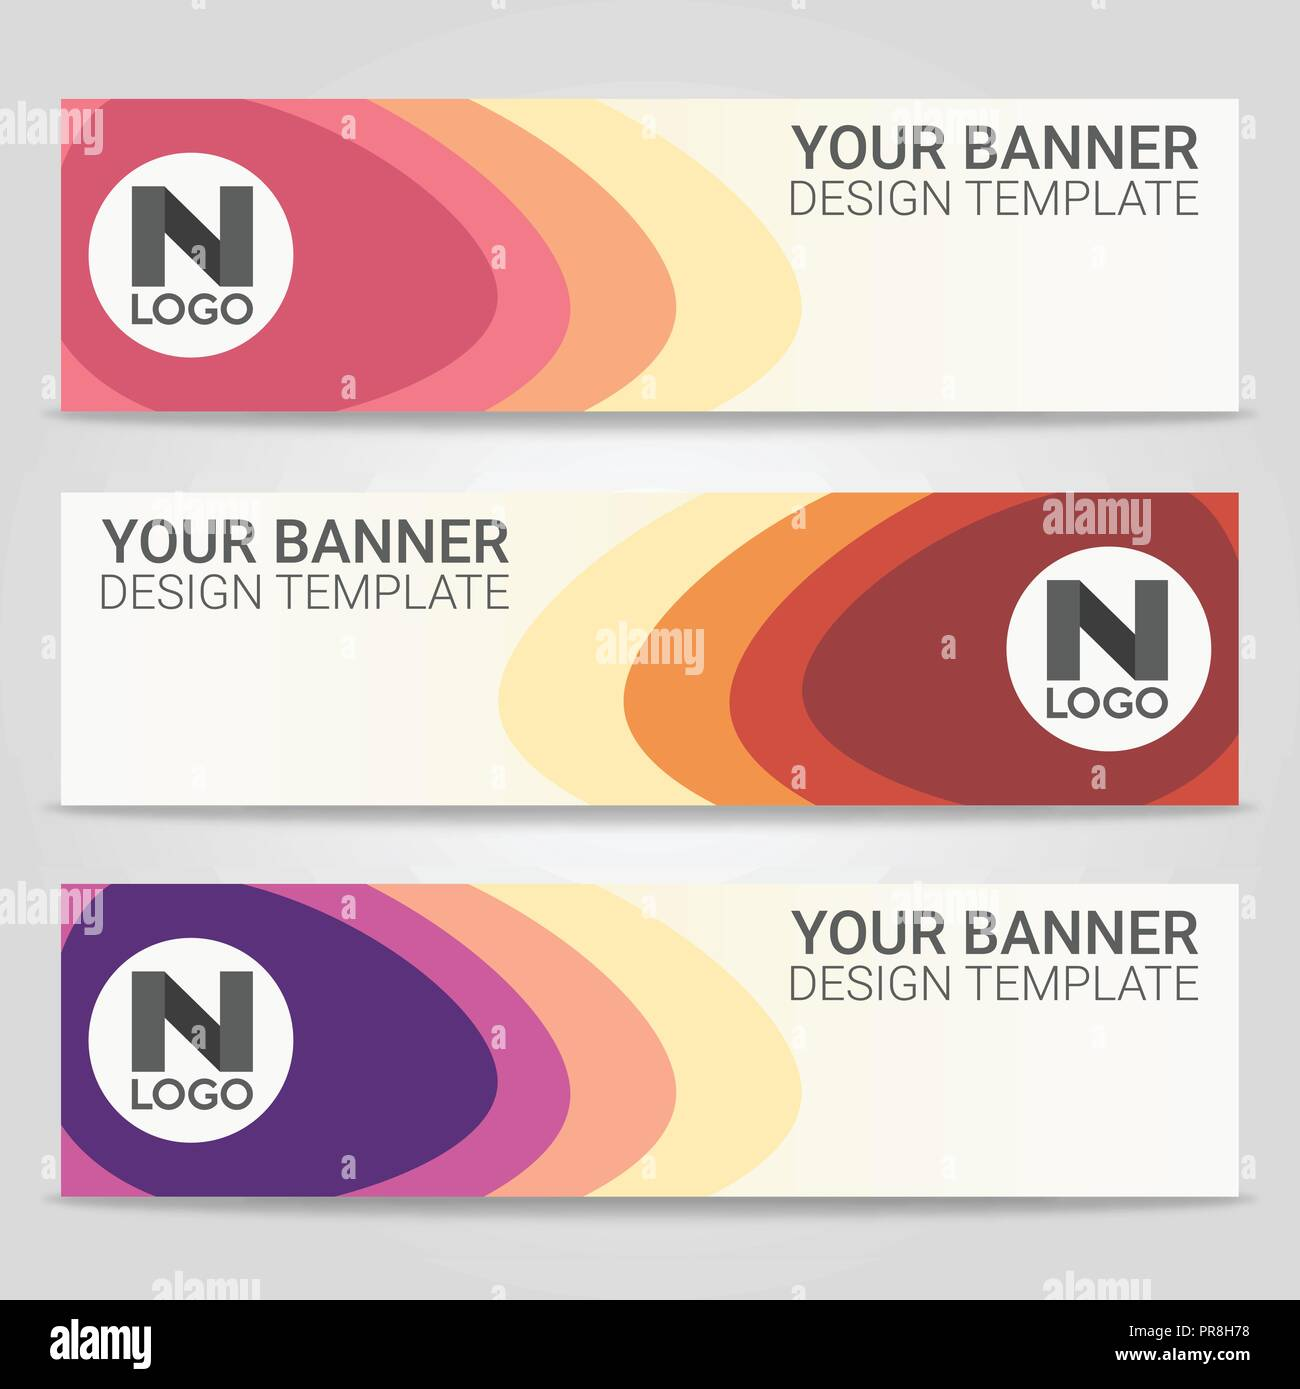 Abstract Beautiful Banner Template Background Vector Illustration Design For Business Presentation Stock Vector Image Art Alamy